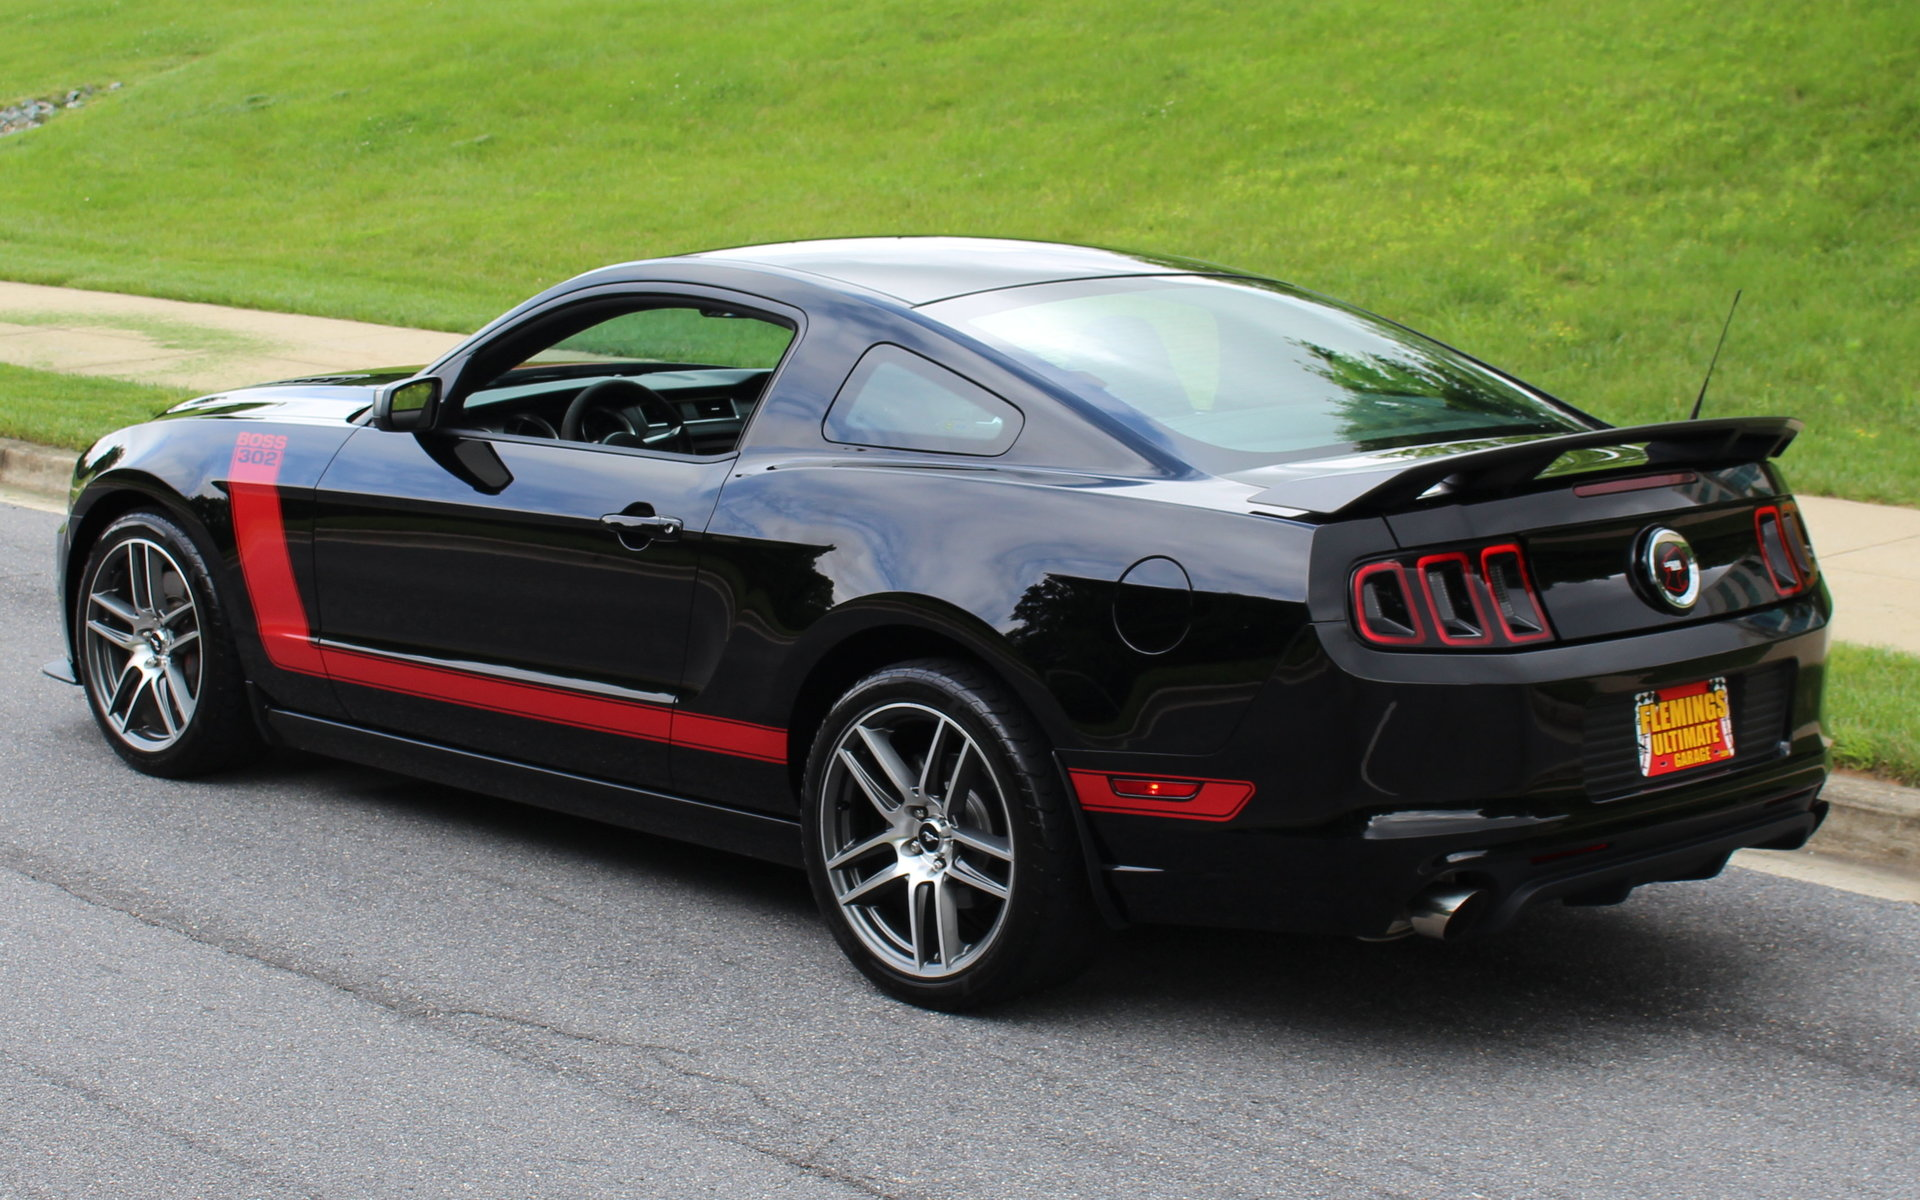 2013 ford mustang boss 302 laguna seca for sale 89654 mcg. Black Bedroom Furniture Sets. Home Design Ideas